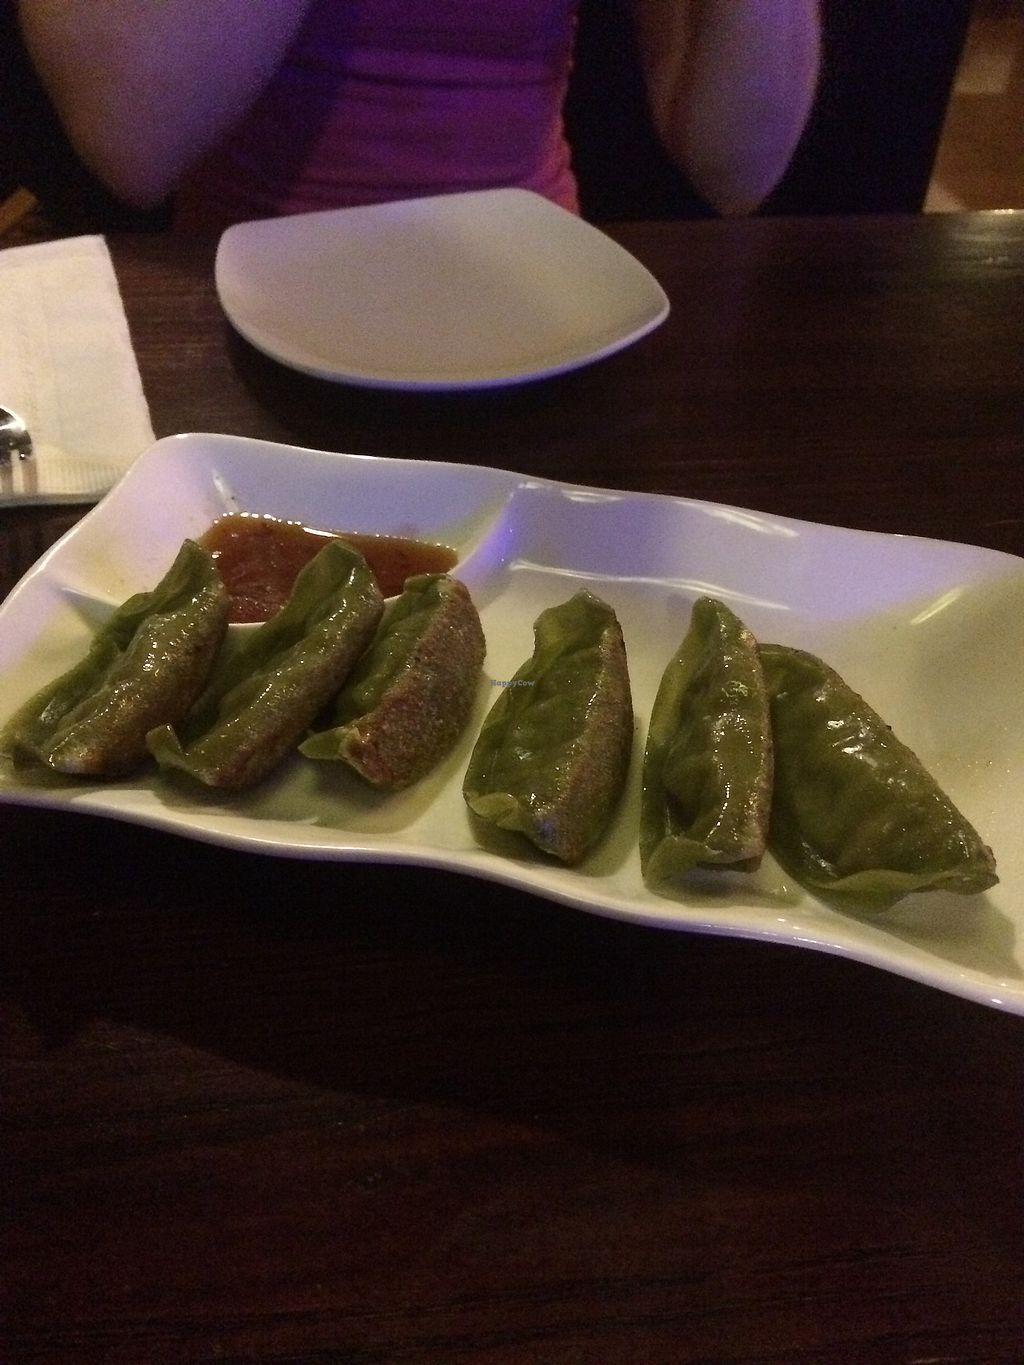 """Photo of Veggie Fun  by <a href=""""/members/profile/giant%20bunnie"""">giant bunnie</a> <br/>vegan fried dumplings  <br/> July 24, 2017  - <a href='/contact/abuse/image/34687/284417'>Report</a>"""